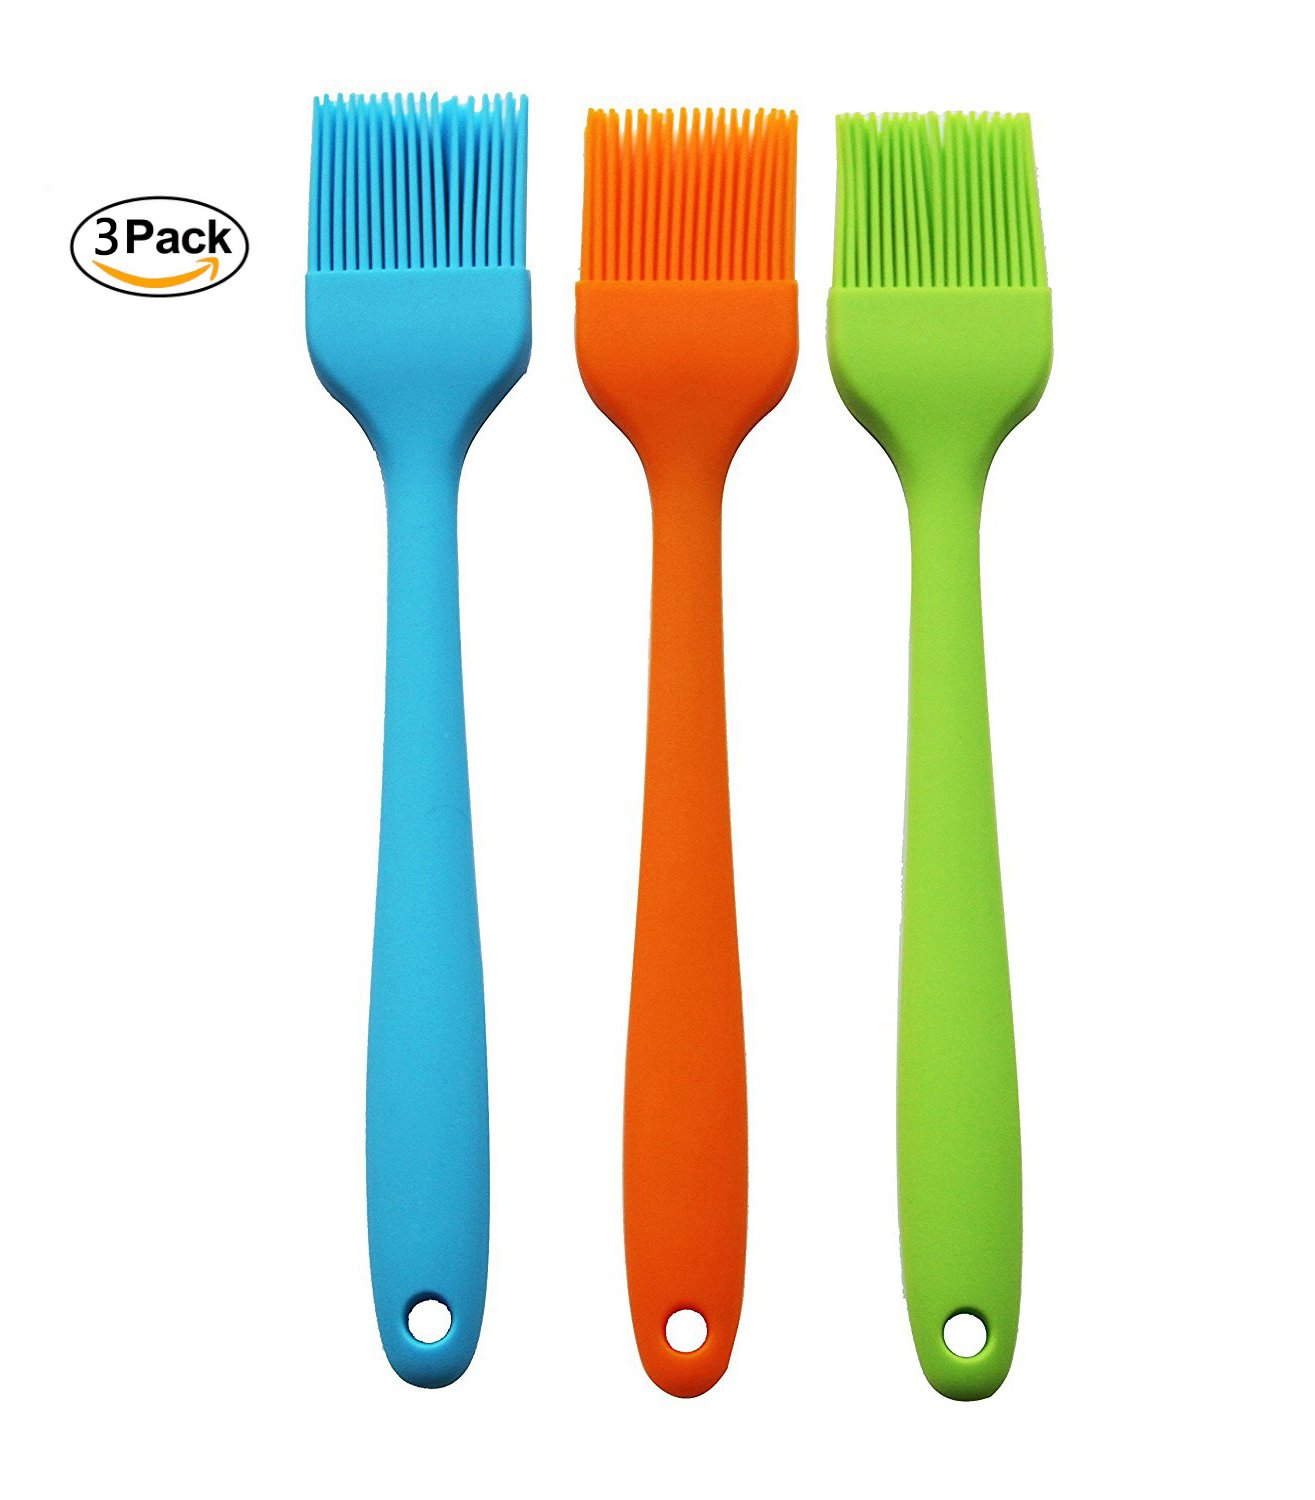 Winlux Set of 3 Silicone Basting & Pastry Brush Oil Brushes For Cake Bread Butter Baking Tools Safety Heat Resistant Barbecue Basting Brush Set